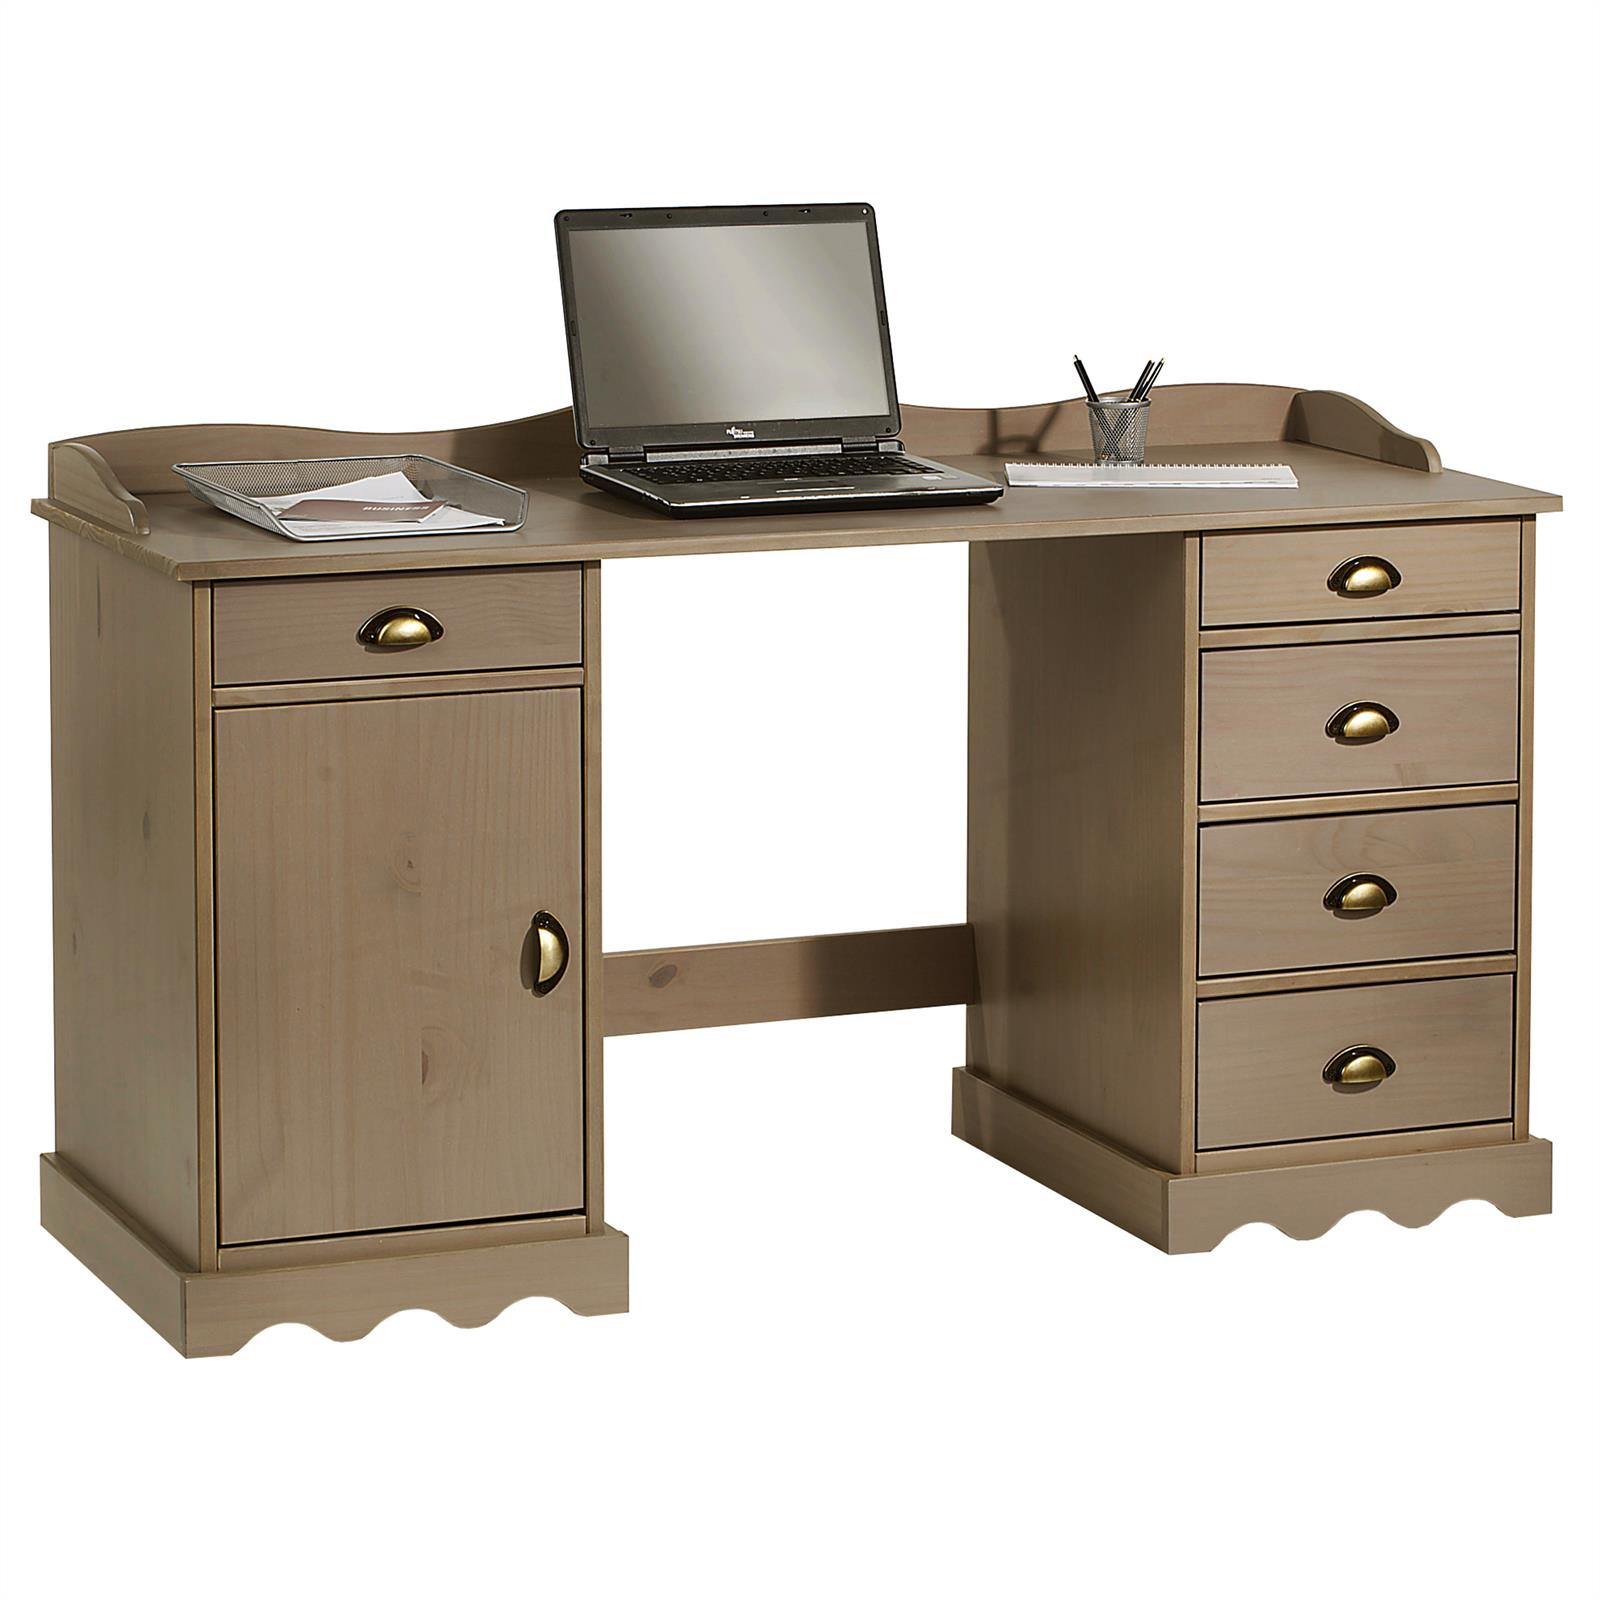 bureau en pin massif sandrine avec corniche lasur taupe mobil meubles. Black Bedroom Furniture Sets. Home Design Ideas